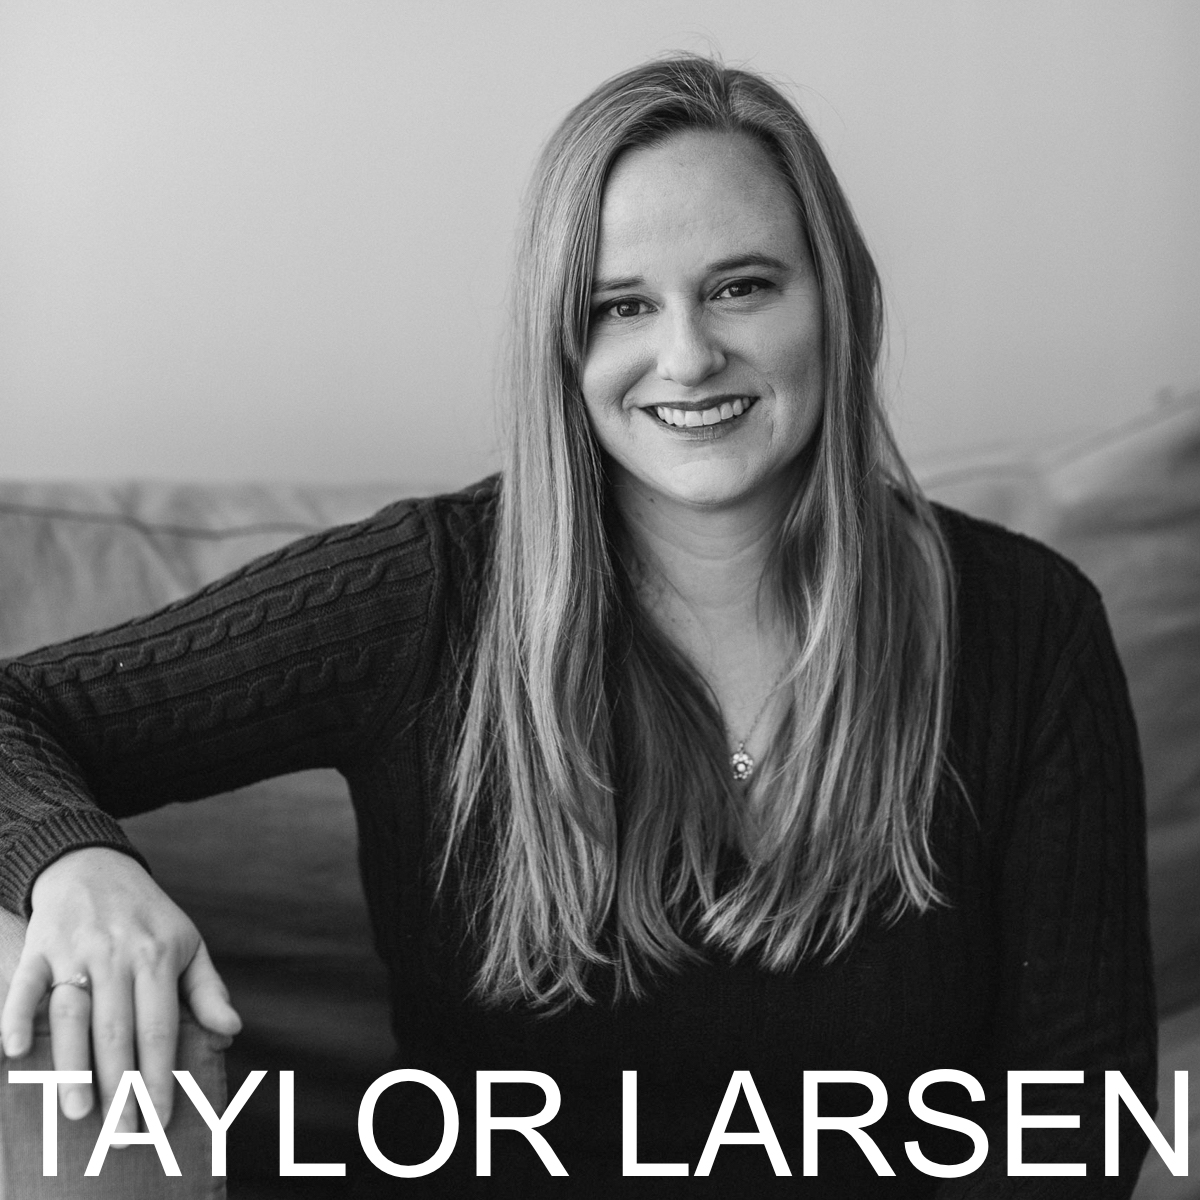 Author photo Taylor Larsen Photo by Sylvie Rosokoff .jpg